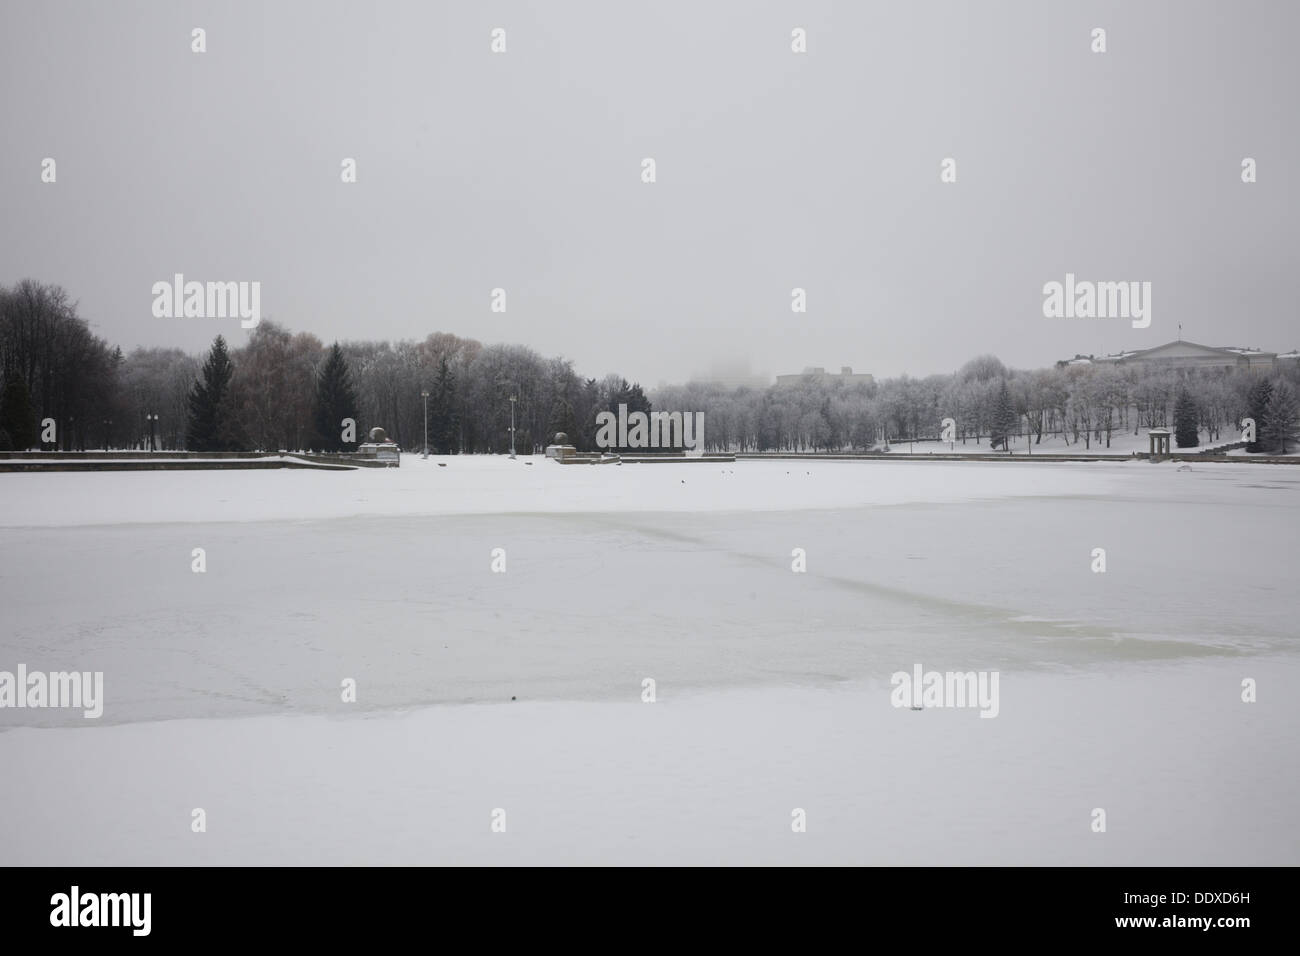 Along the banks of the frozen Svislach River. Minsk, Belarus. - Stock Image